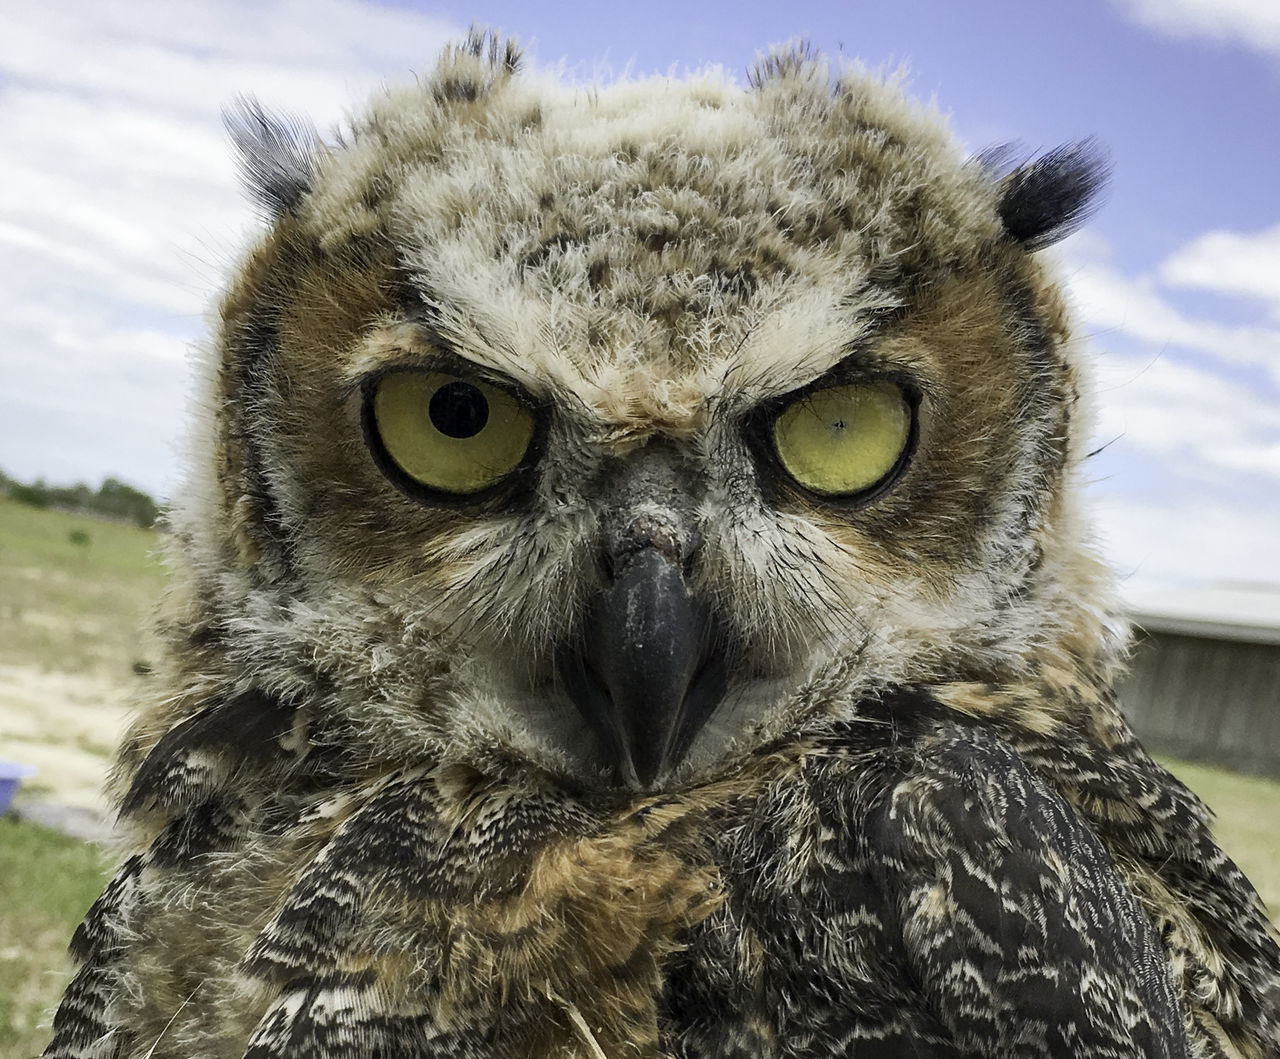 Face of blind juvenile owl Animal Themes Animal Wildlife Animals In The Wild Bird Bird Of Prey Close-up Eyes Looking At Camera Nature Outdoors Owl Owlette Raptor Wildlife